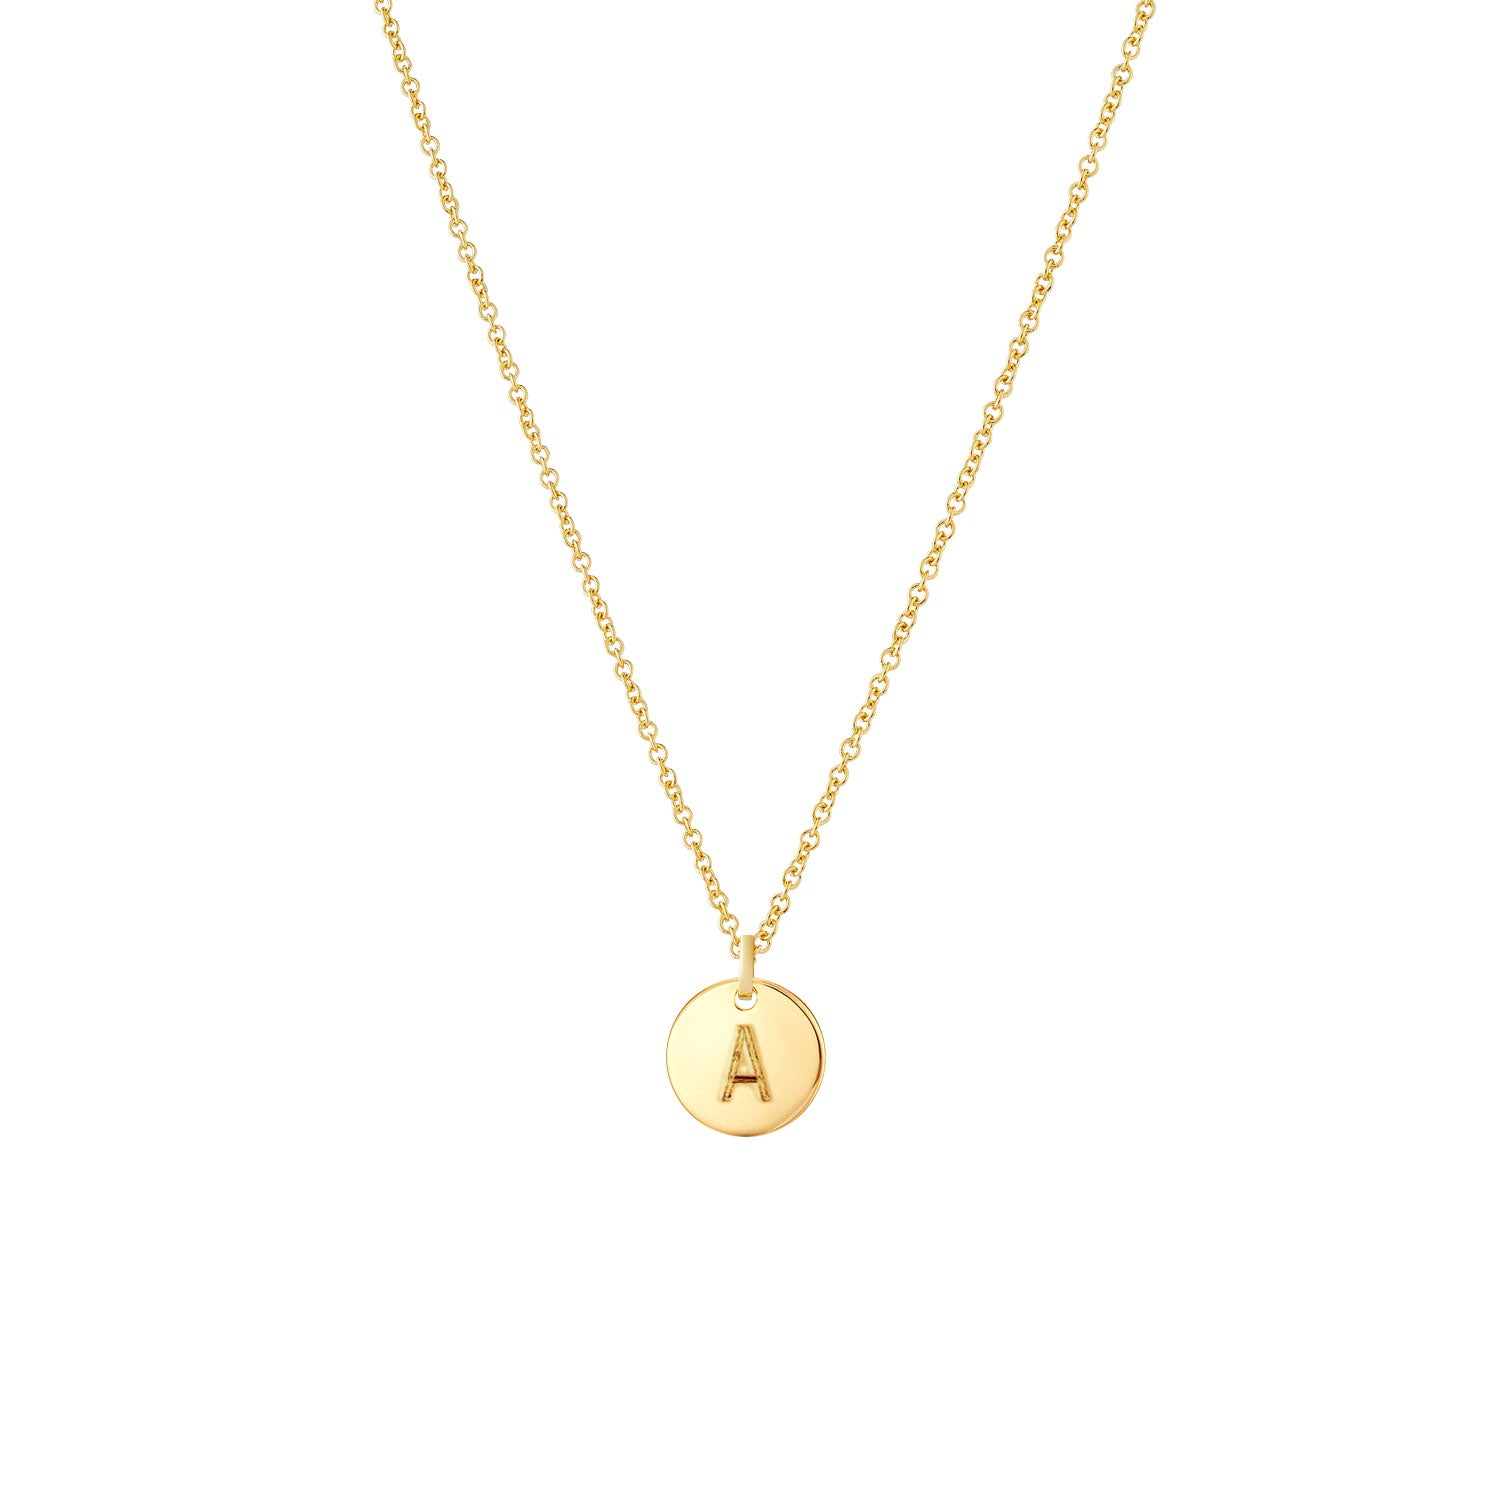 Initial Necklace - 14k Gold